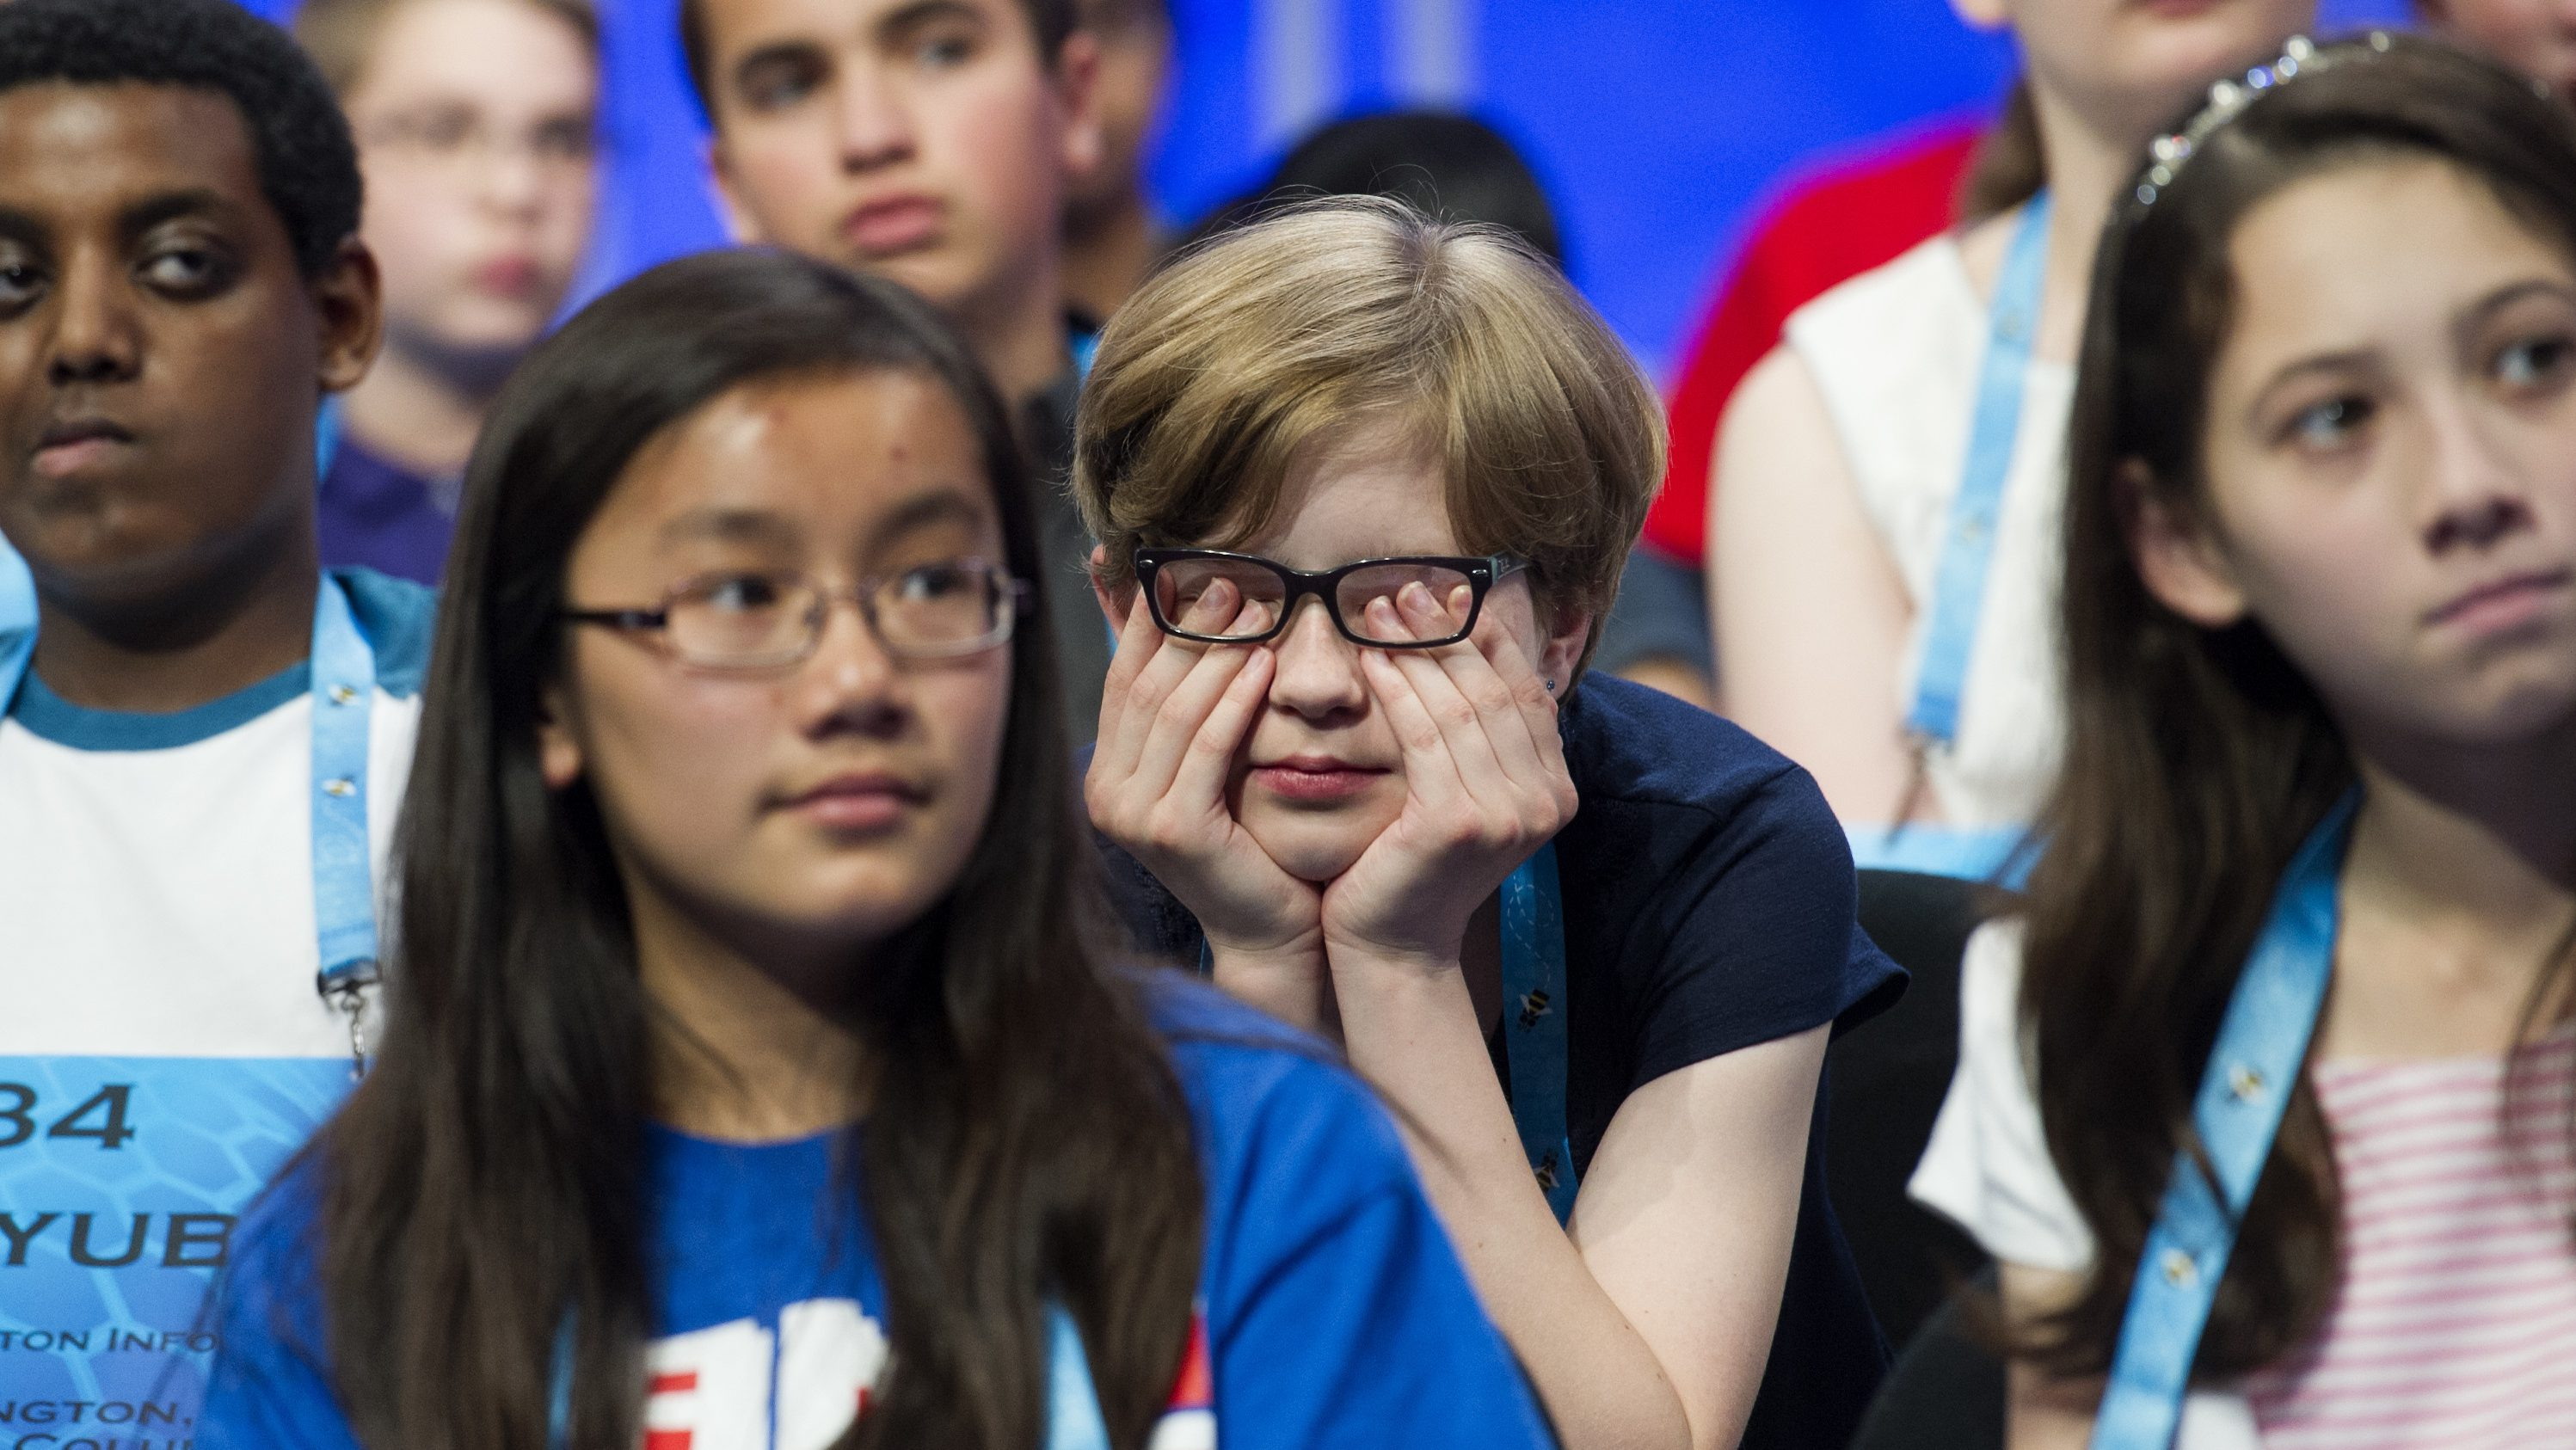 Ella Scheuermann, 11, from Grafenwoehr, Germany, rubs her eyes after sitting down following correctly spelling her word during the preliminary round three of the Scripps National Spelling Bee in National Harbor, Md., Wednesday, May 25, 2016. (AP Photo/Cliff Owen)